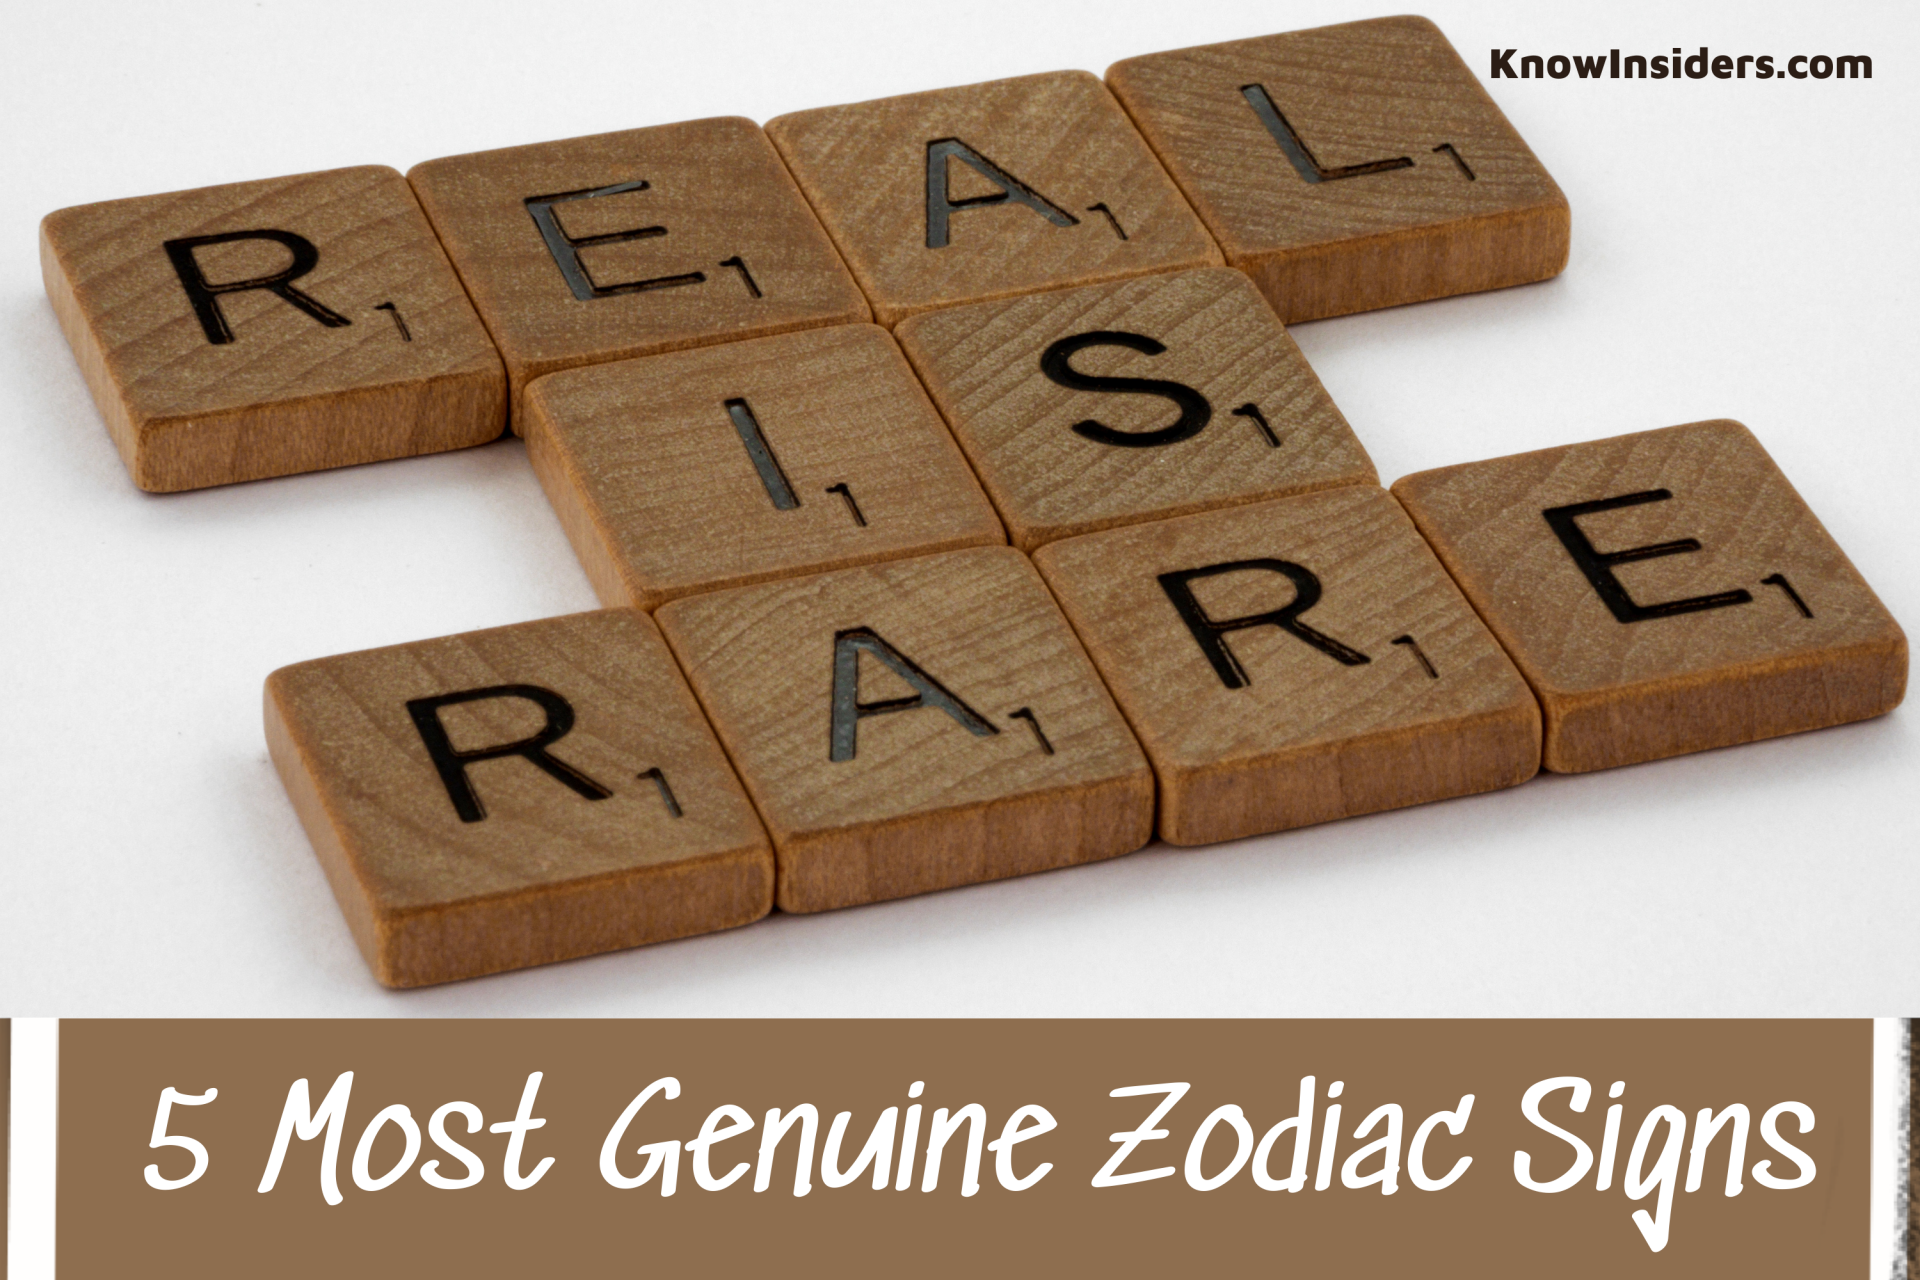 Top 5 Most Genuine Zodiac Signs, According To Astrology